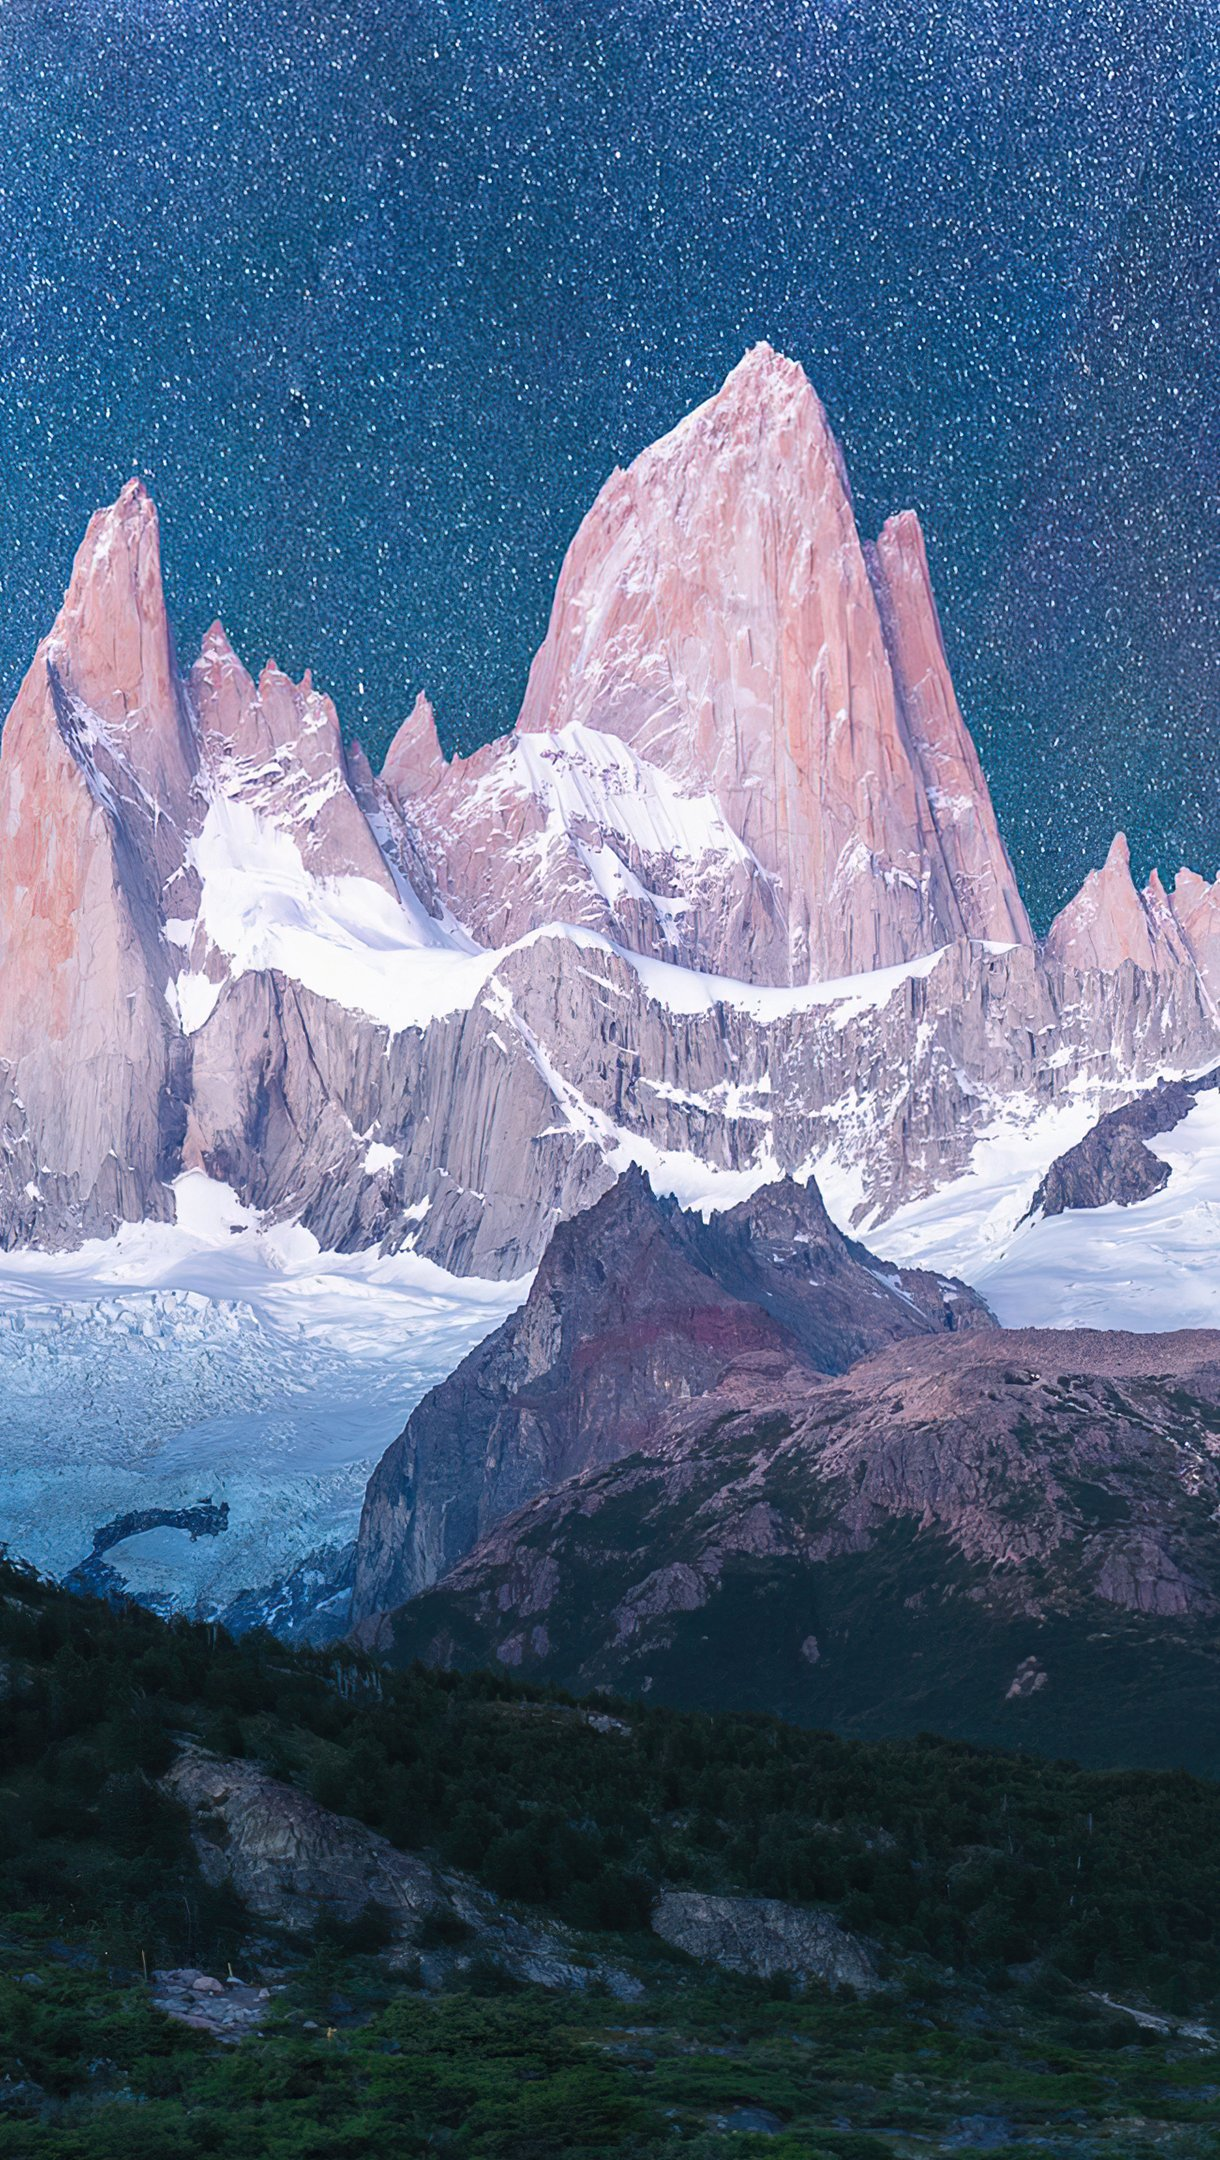 Wallpaper Mountains with snow under the stars Vertical